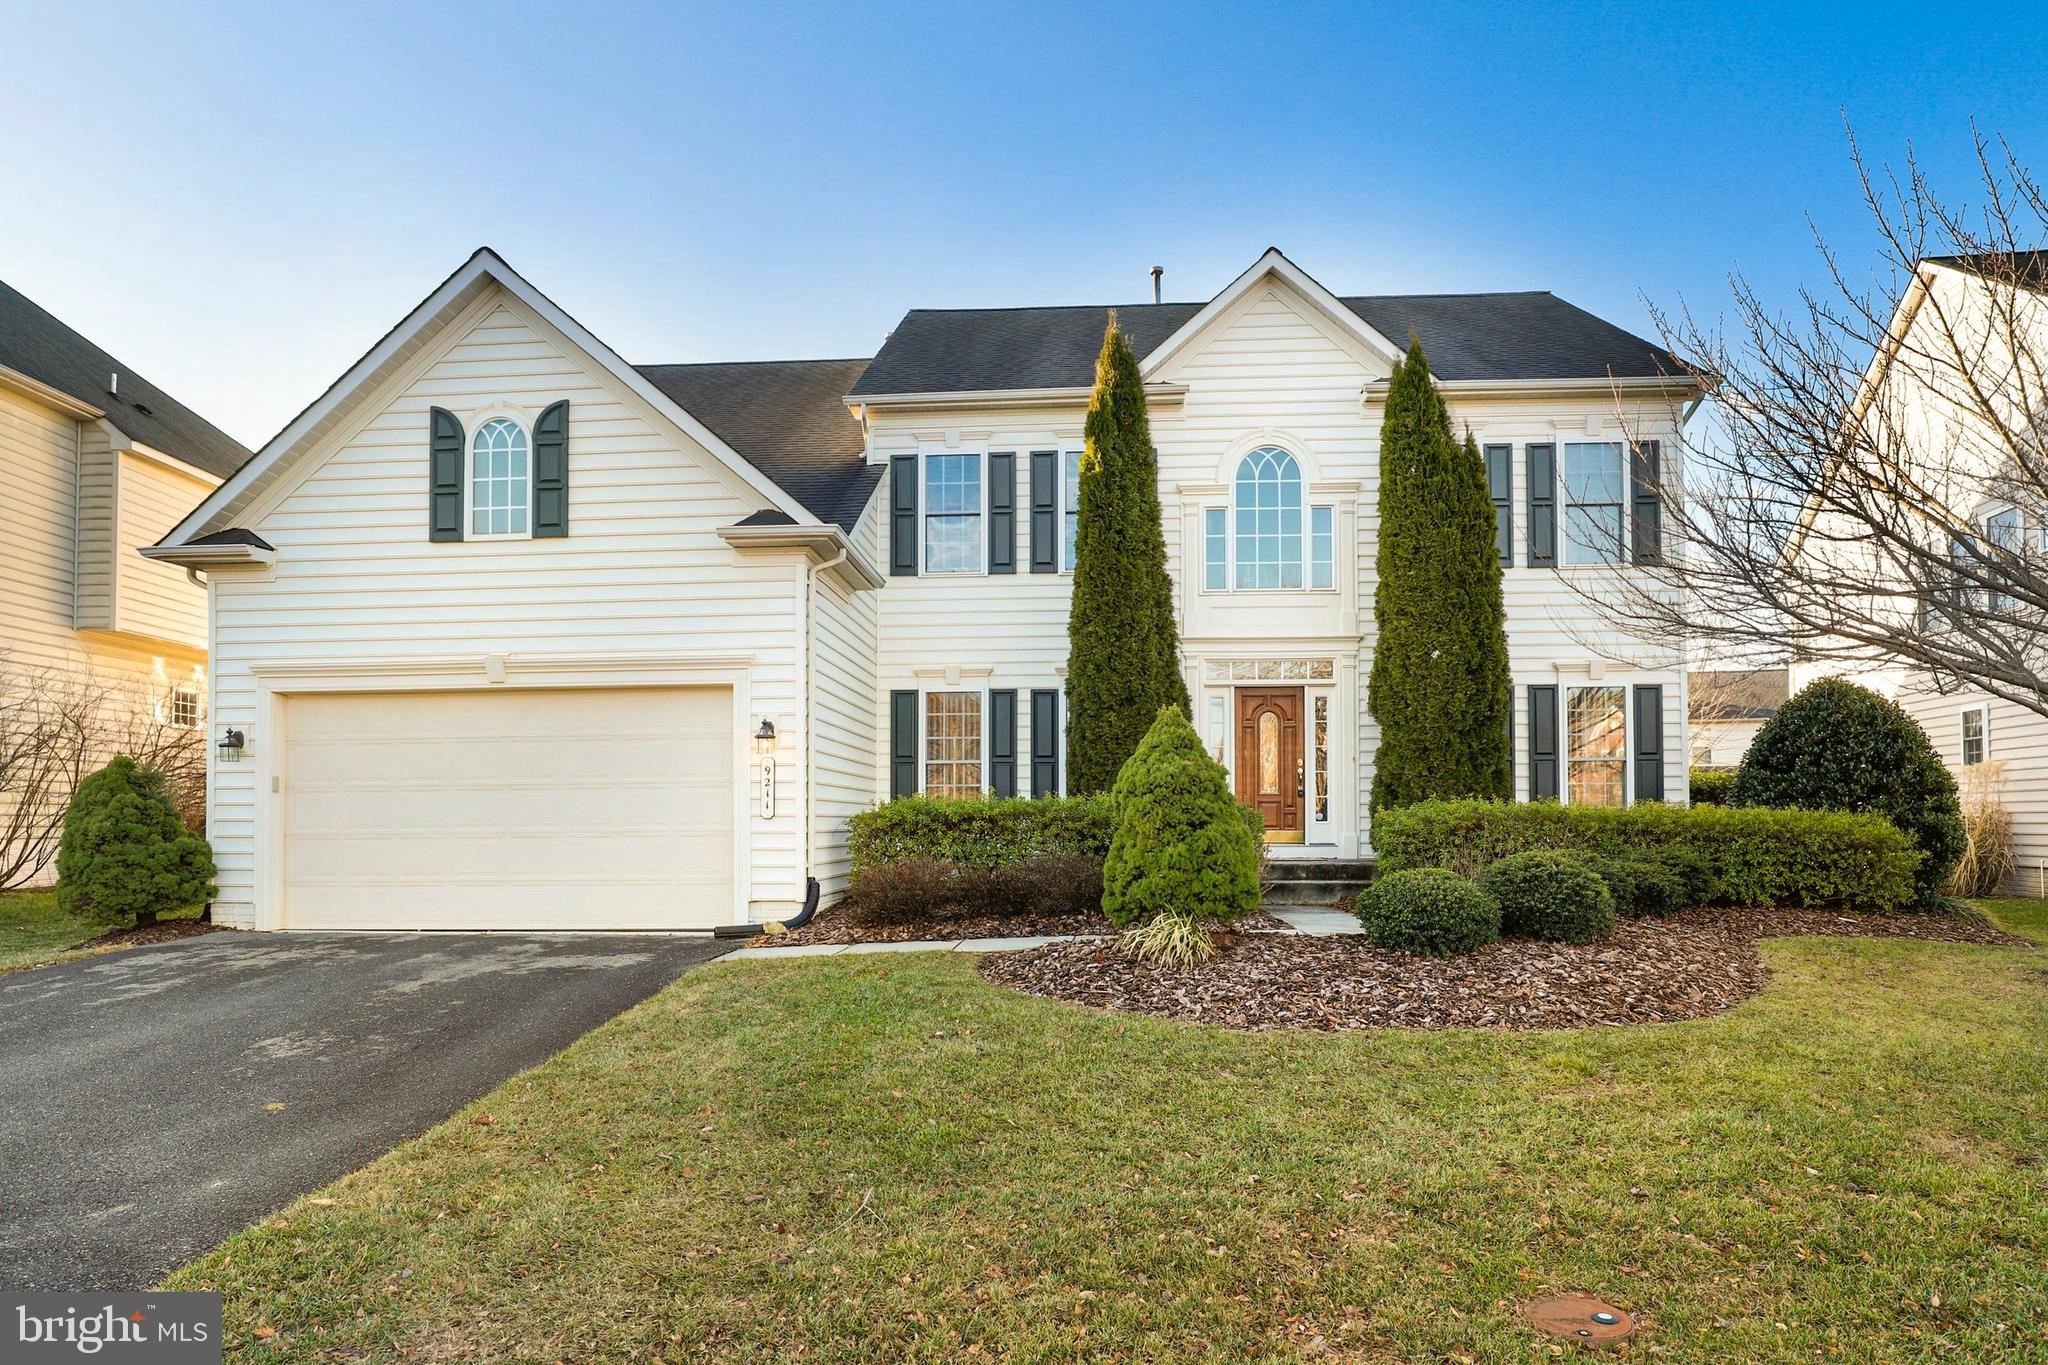 9211 SHAFERS MILL DRIVE, FREDERICK, MD 21704